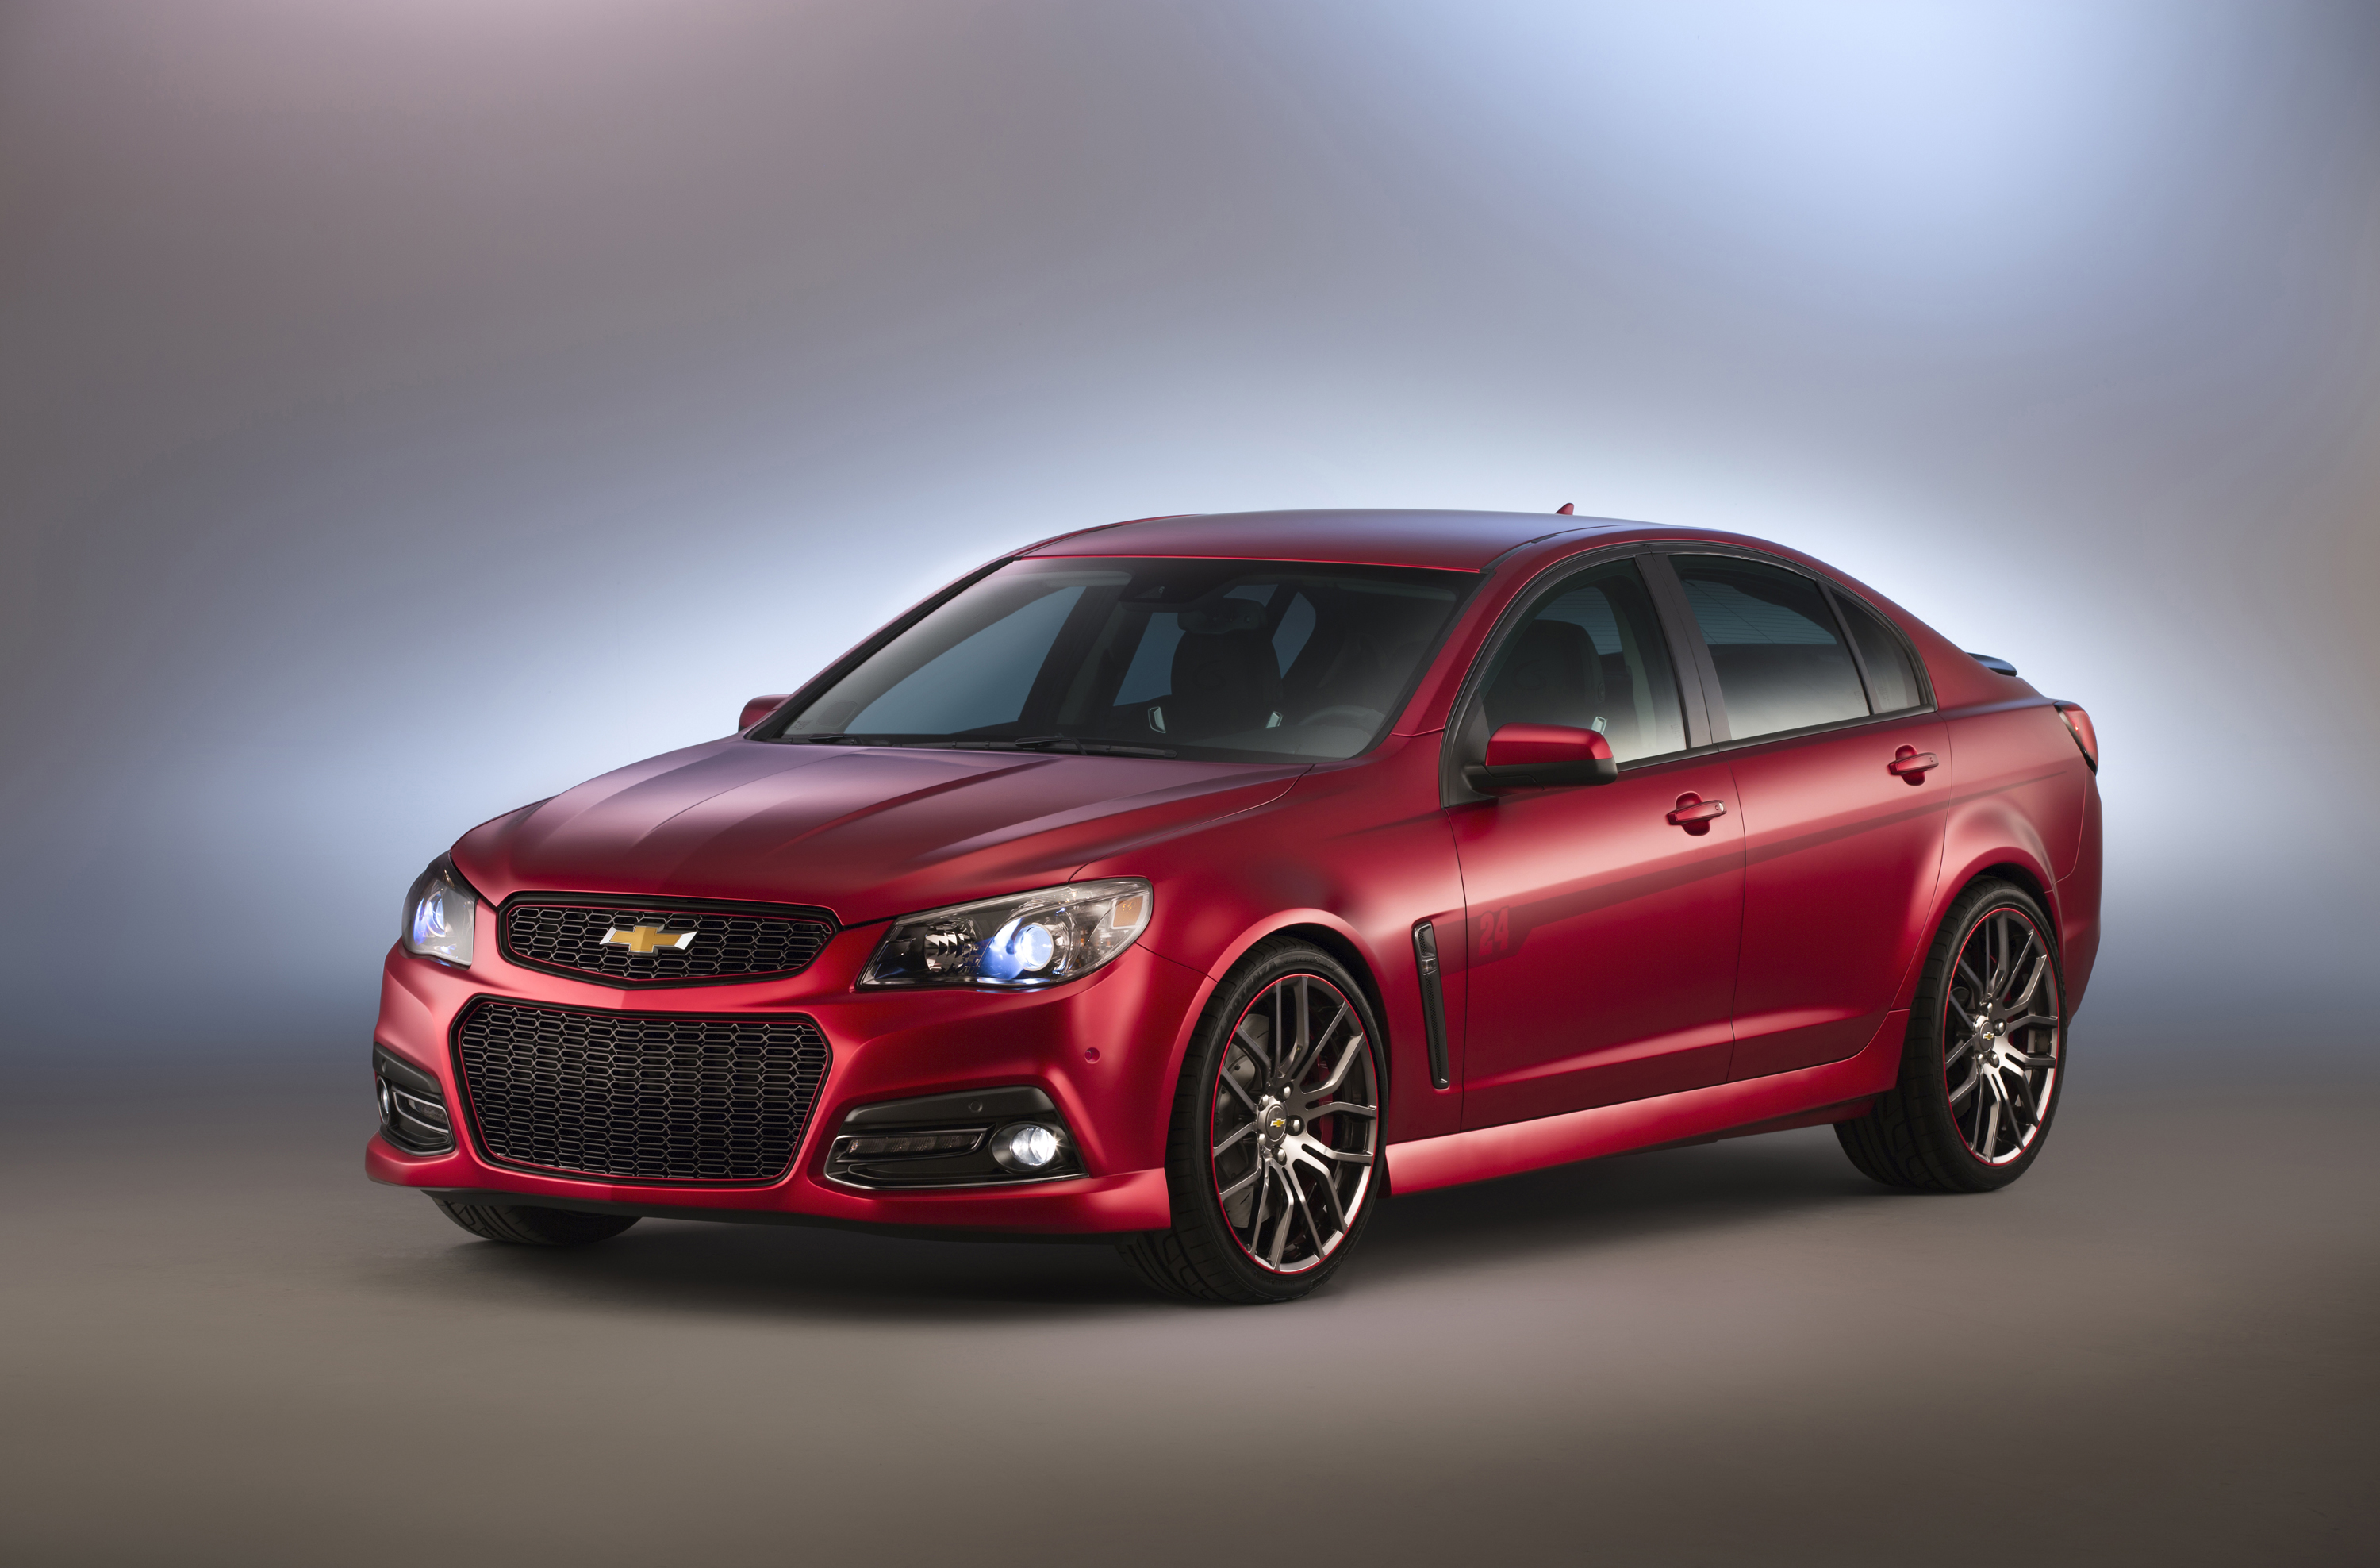 Chevrolet Performance Cars Flex Muscles at SEMA Show